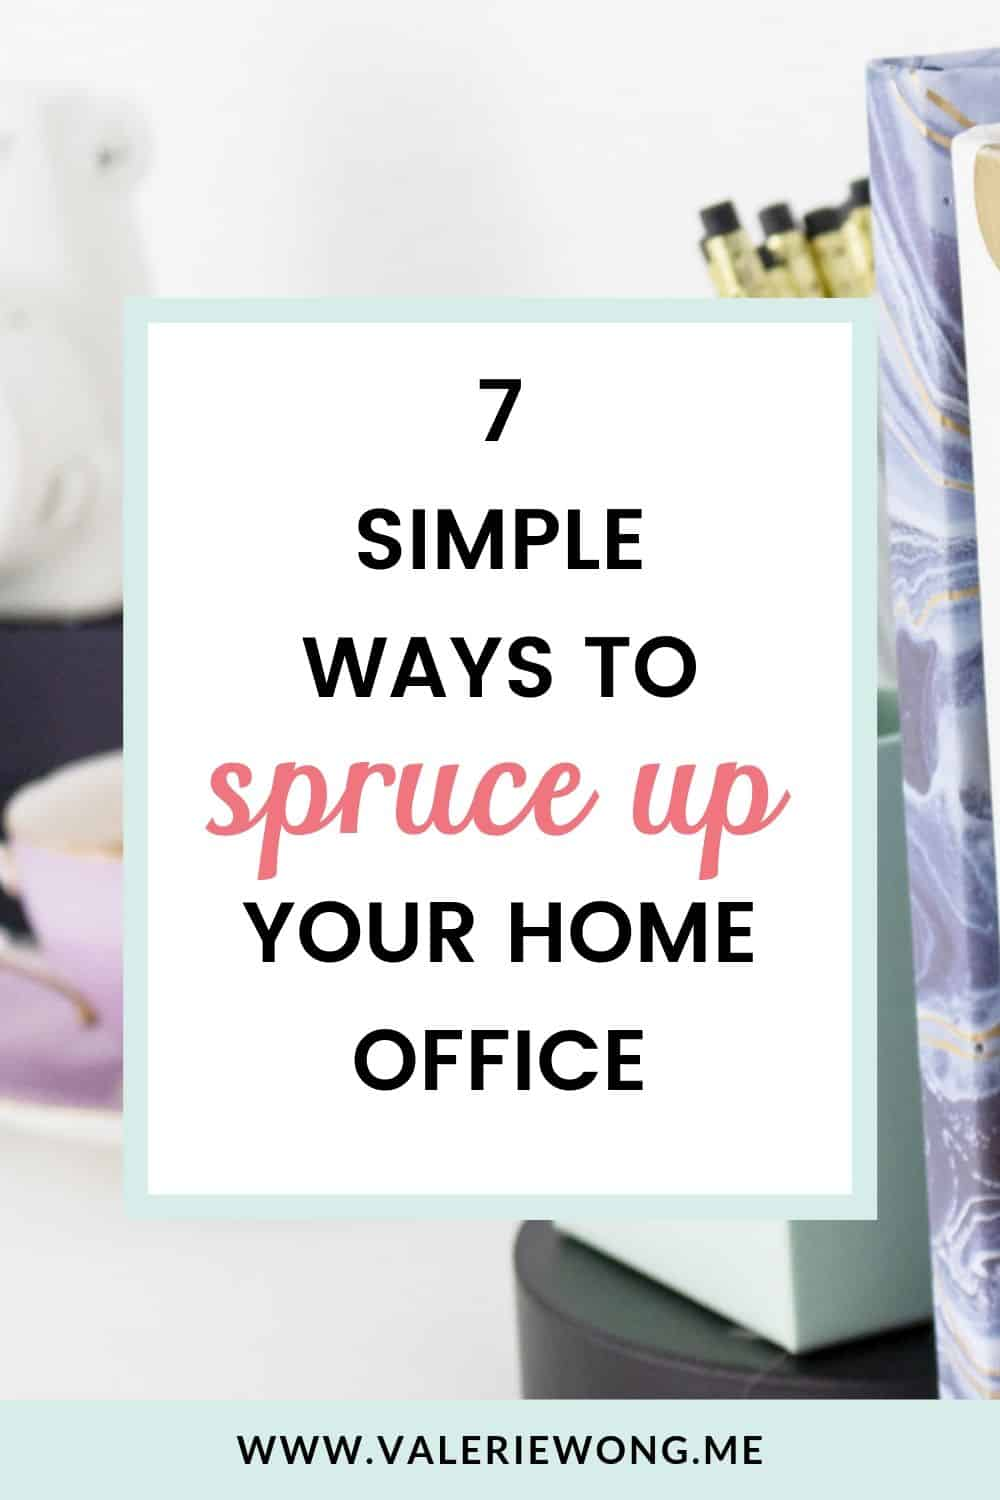 7 simple ways to spruce up your home office on a budget | If you're a work-from-home solopreneur and your home office is feeling stale and uninspiring, it may be time to freshen up your work space! Try some of these affordable ideas for sprucing up your home office so you have a work space that makes you feel energized, inspired, focused, and productive! | Valerie Wong Wellness #valeriewong #homeoffice #homeofficeideas #solopreneurtips #workfromhome #entrepreneurtips